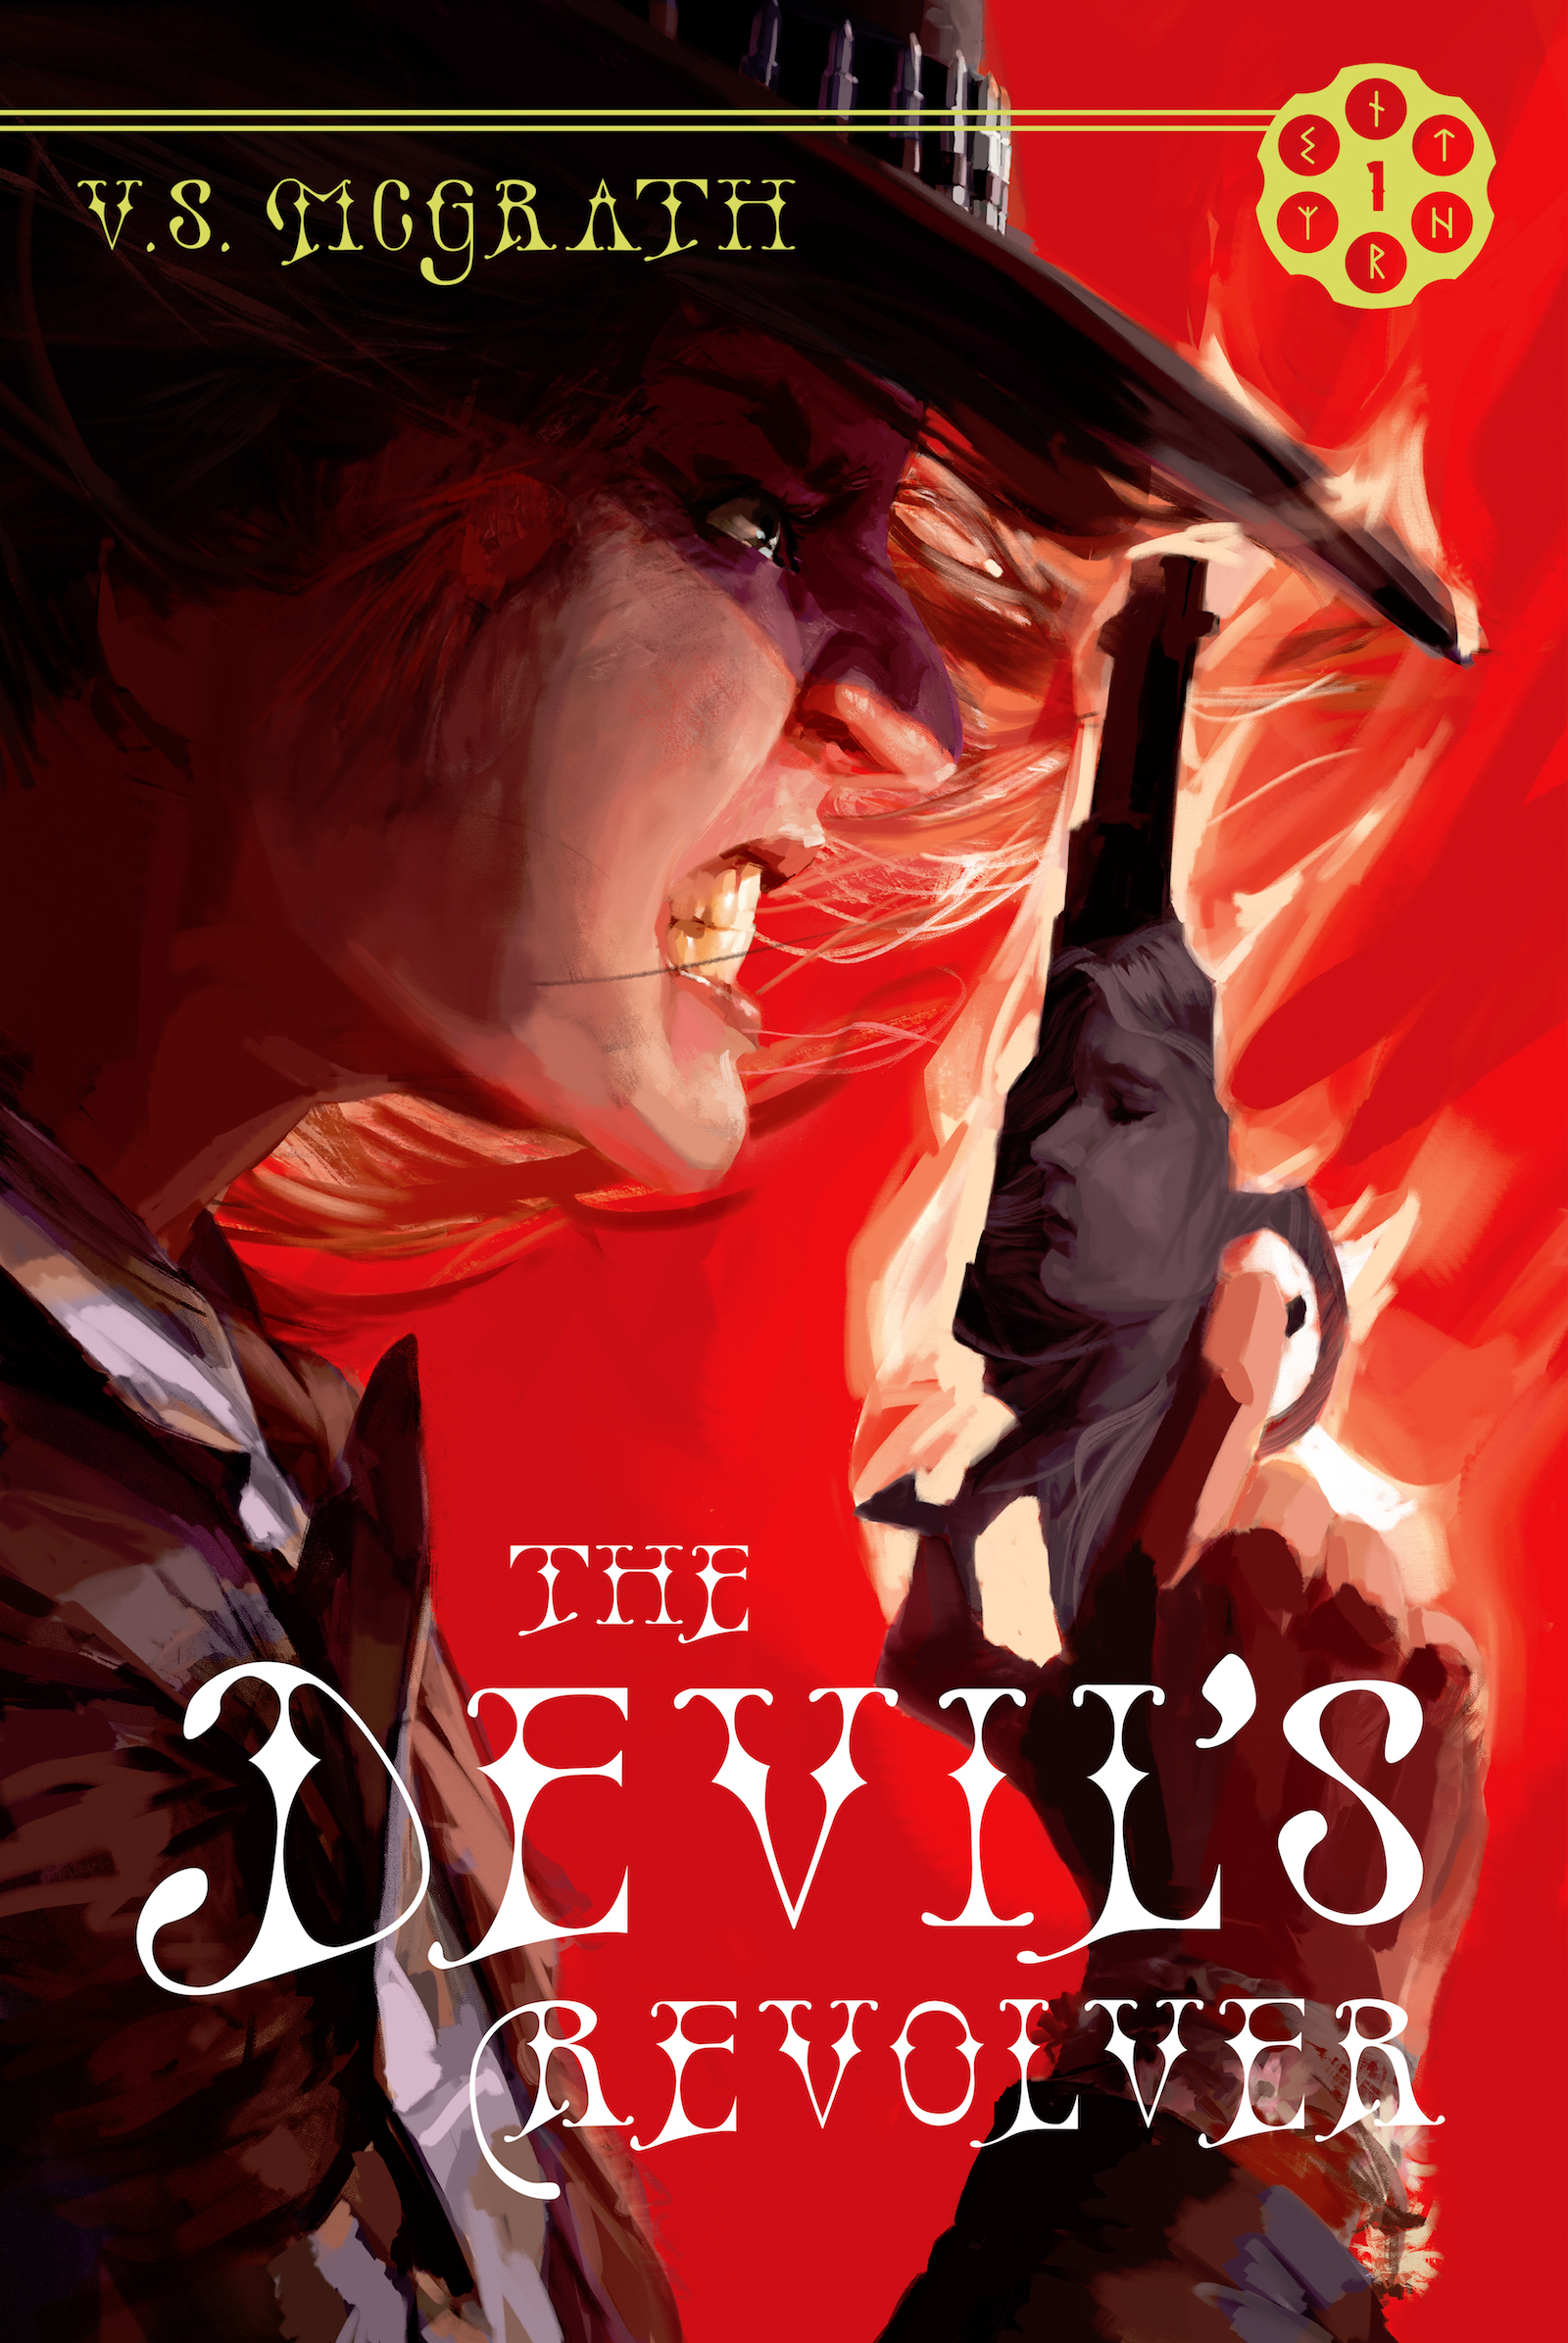 The Devil's Revolver by V.S. McGrath